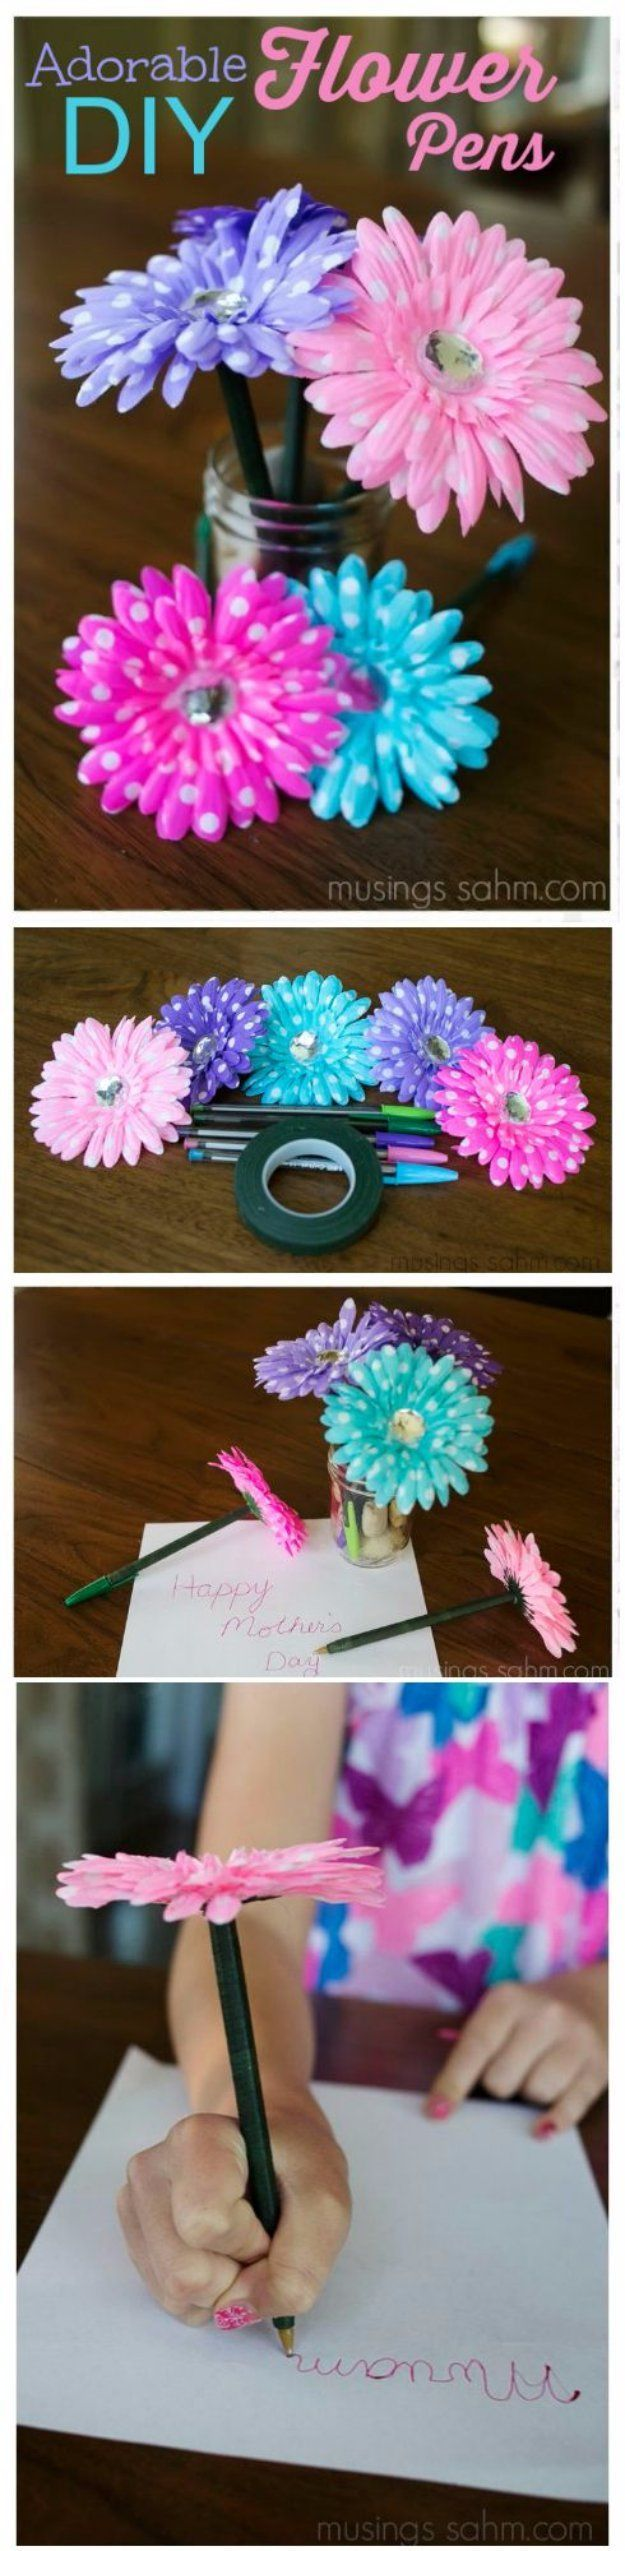 Best 25 crafts to make ideas on pinterest camping for What can i make at home to sell online